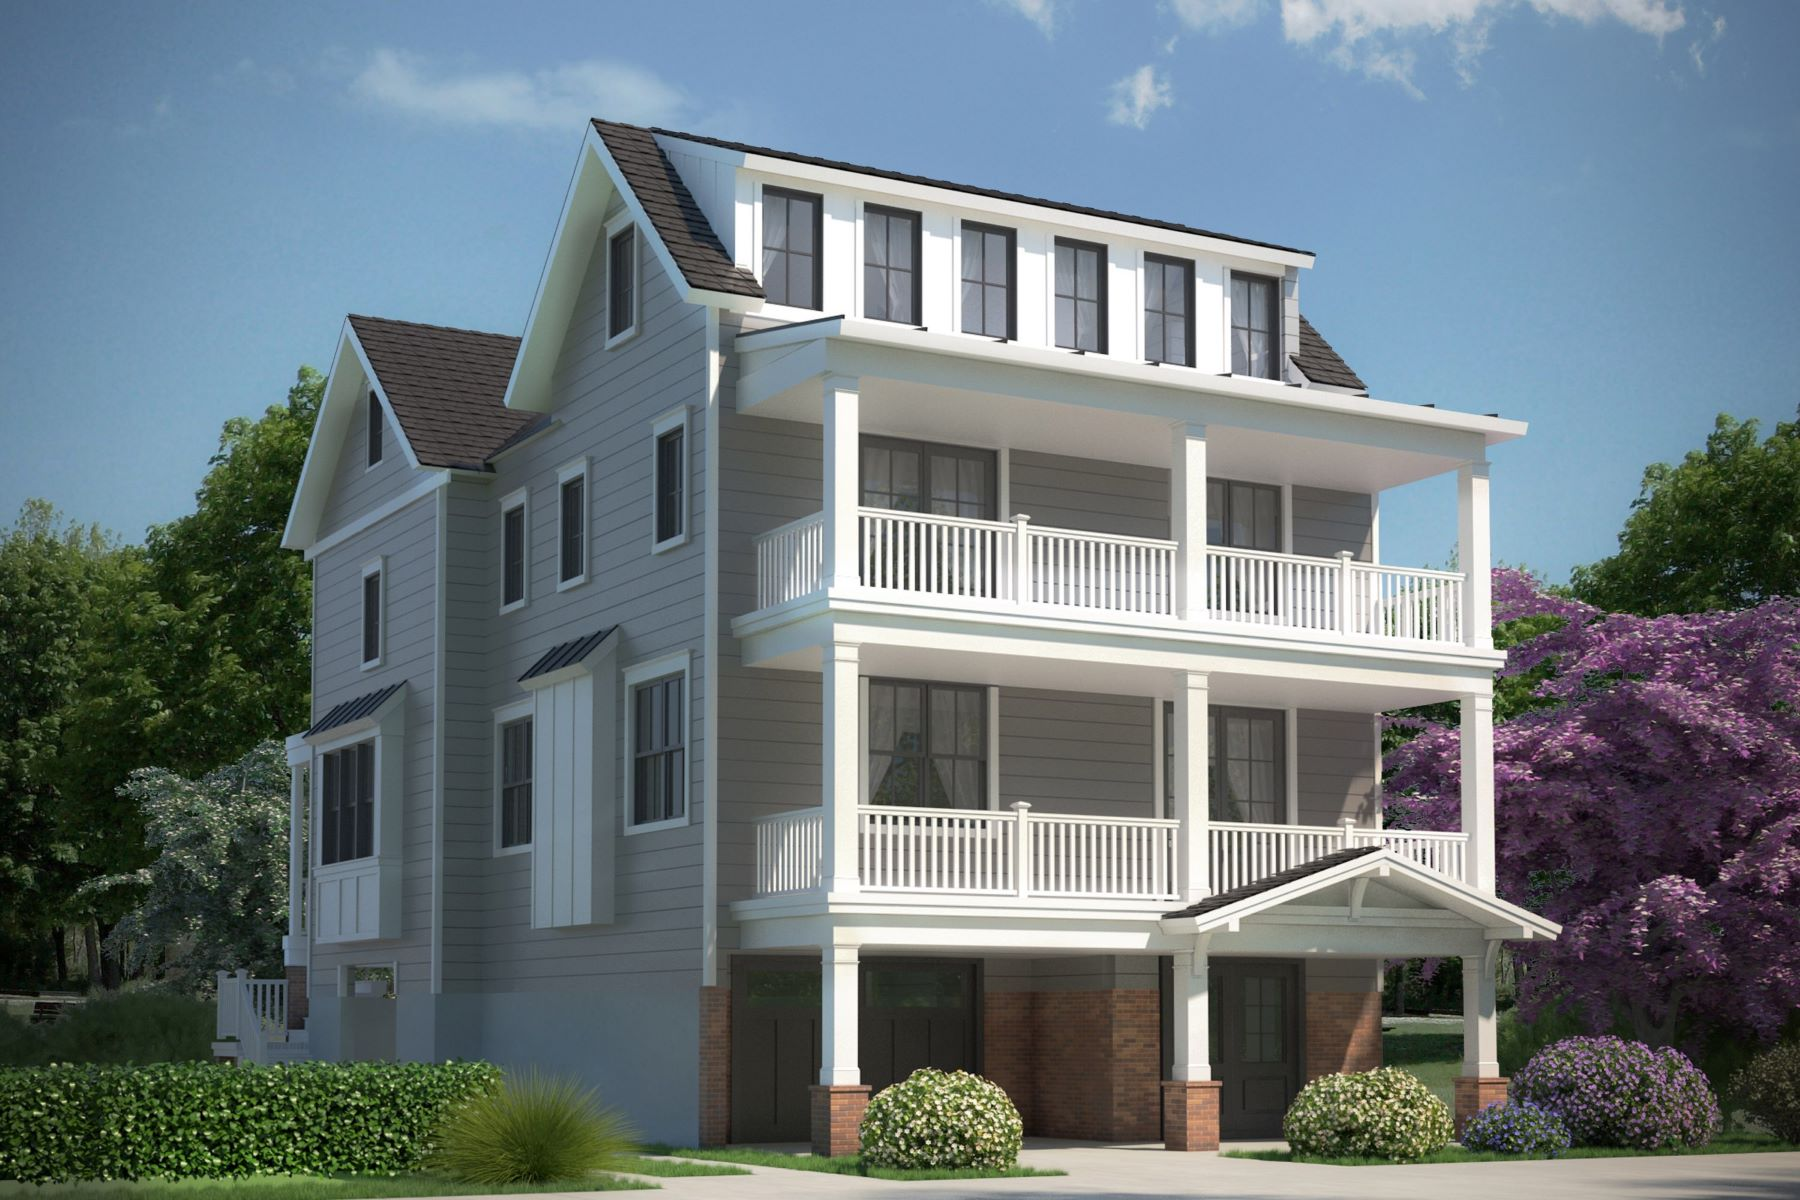 Single Family Homes for Sale at 21 N Douglas Ave Margate, New Jersey 08402 United States